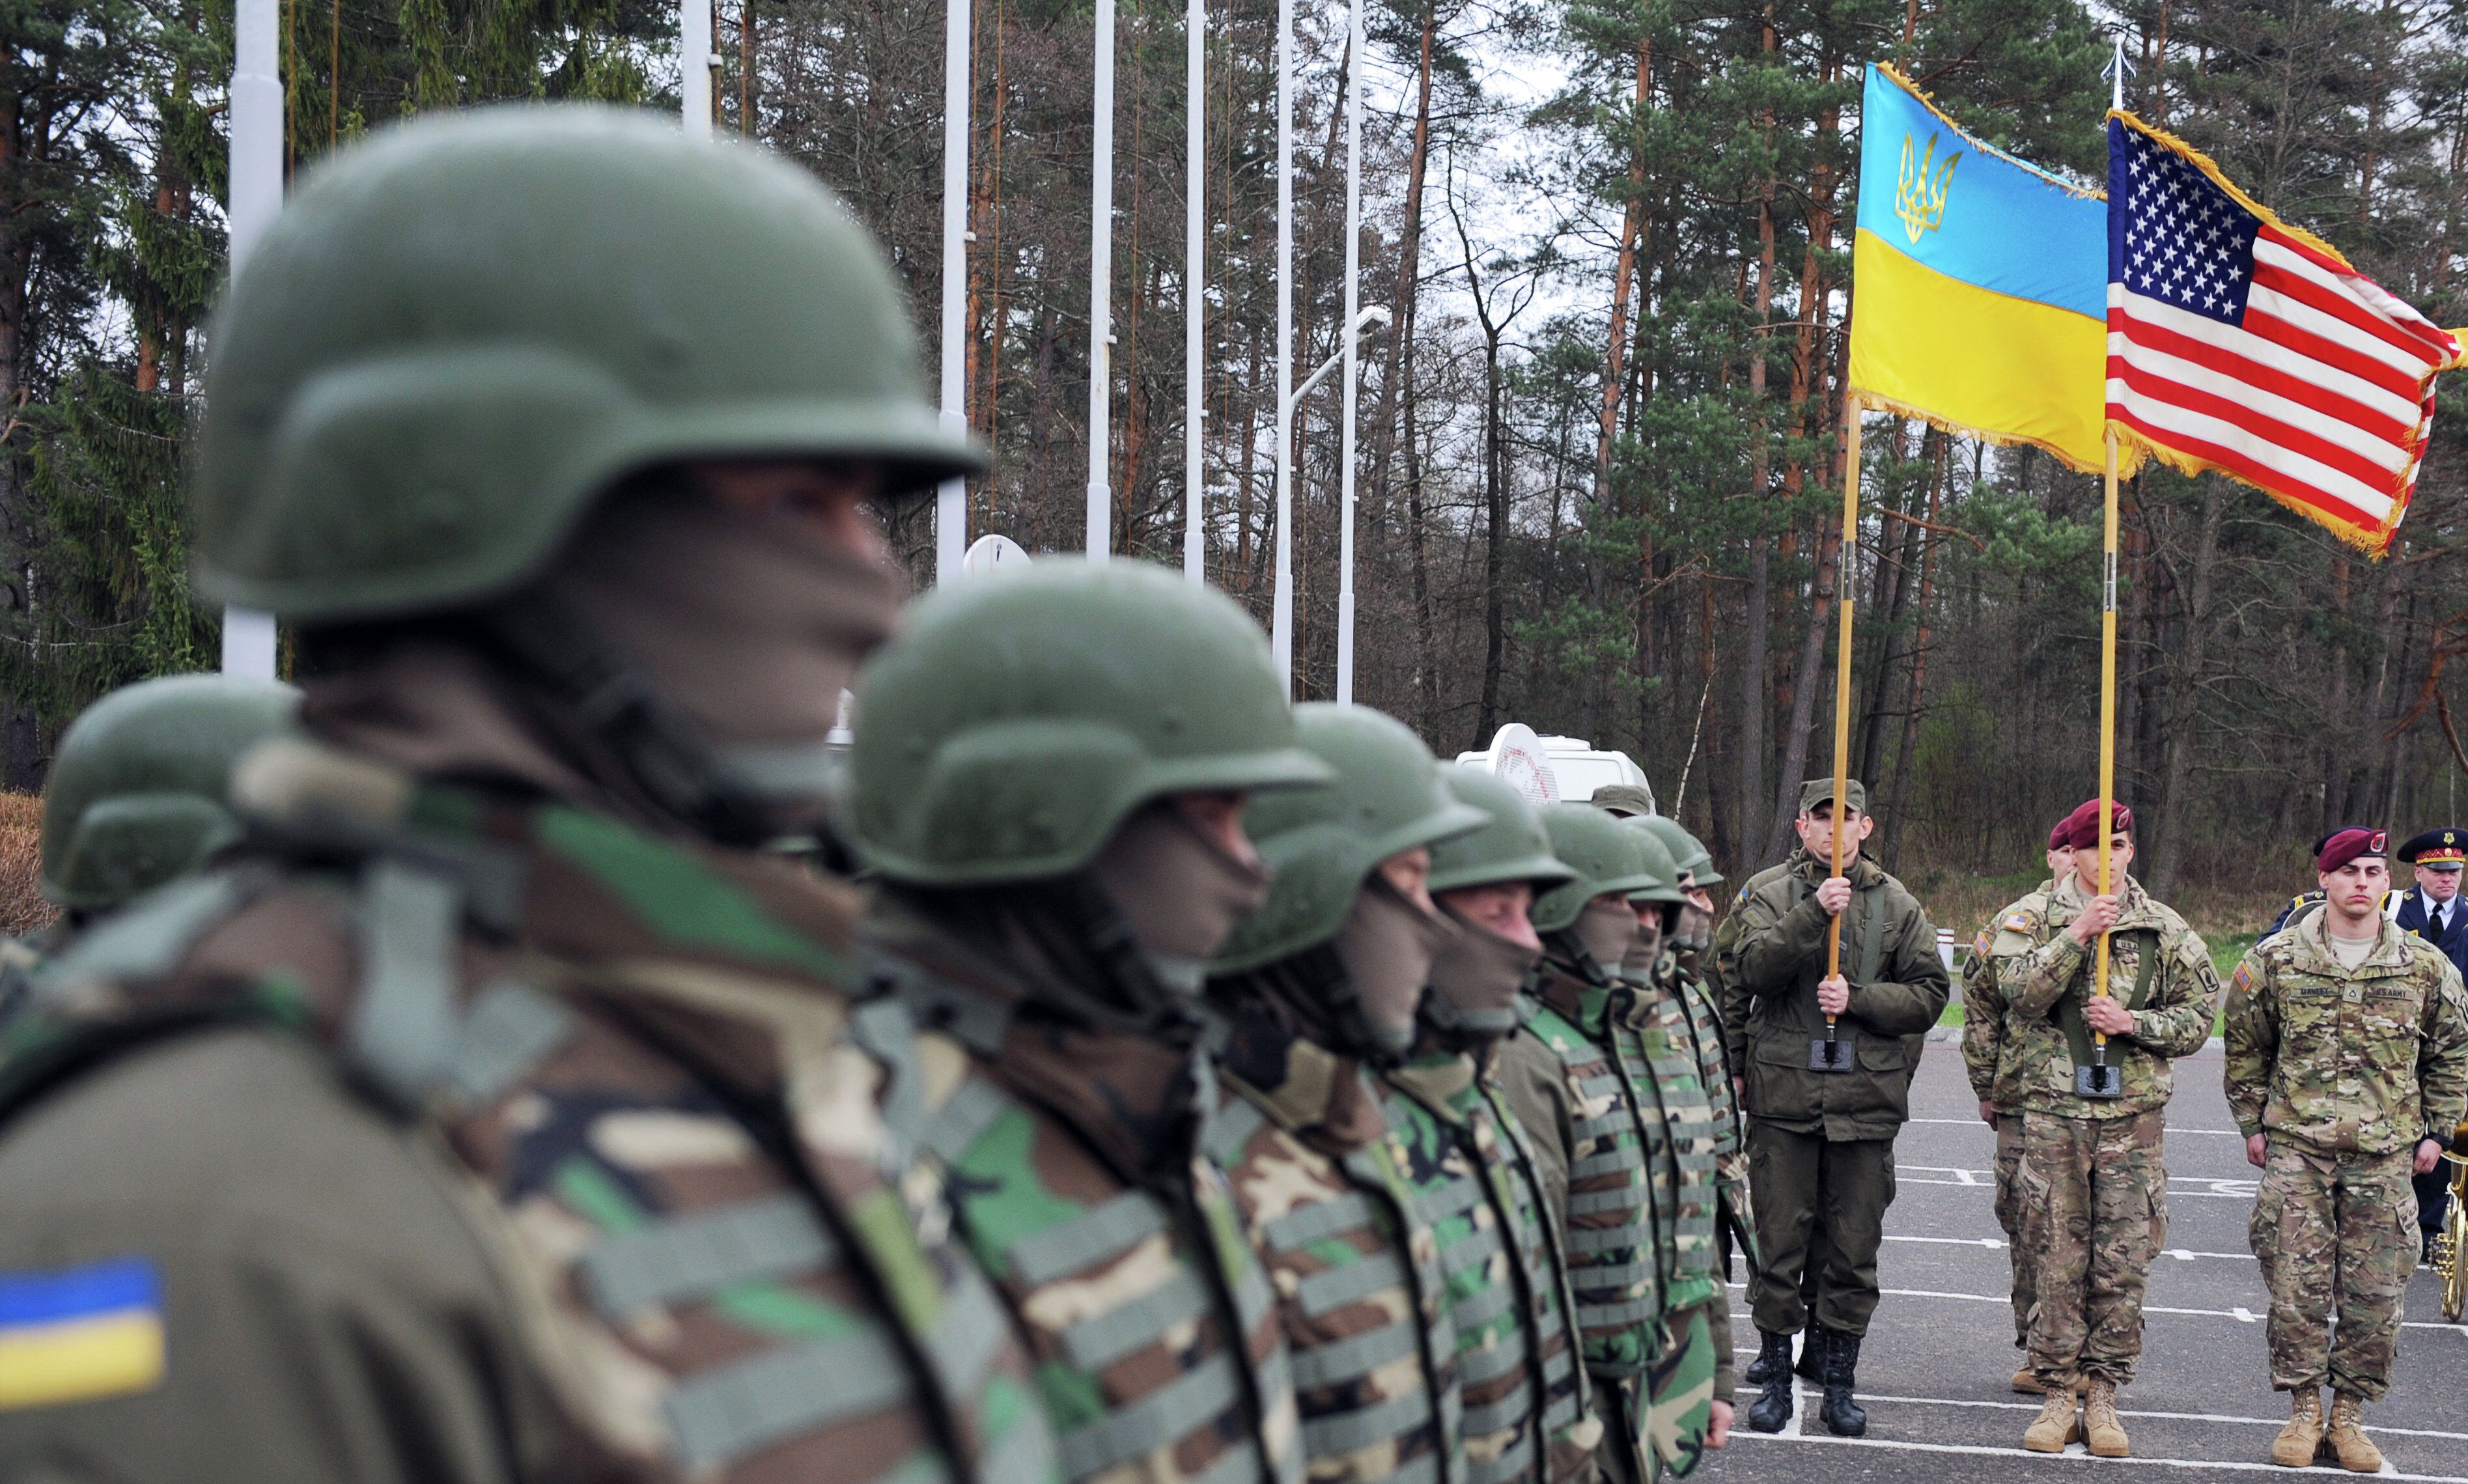 US and Ukrainian soldiers attend an opening ceremony of the joint Ukrainian-US military exercise 'Fearless Guardian' at the Yavoriv training ground